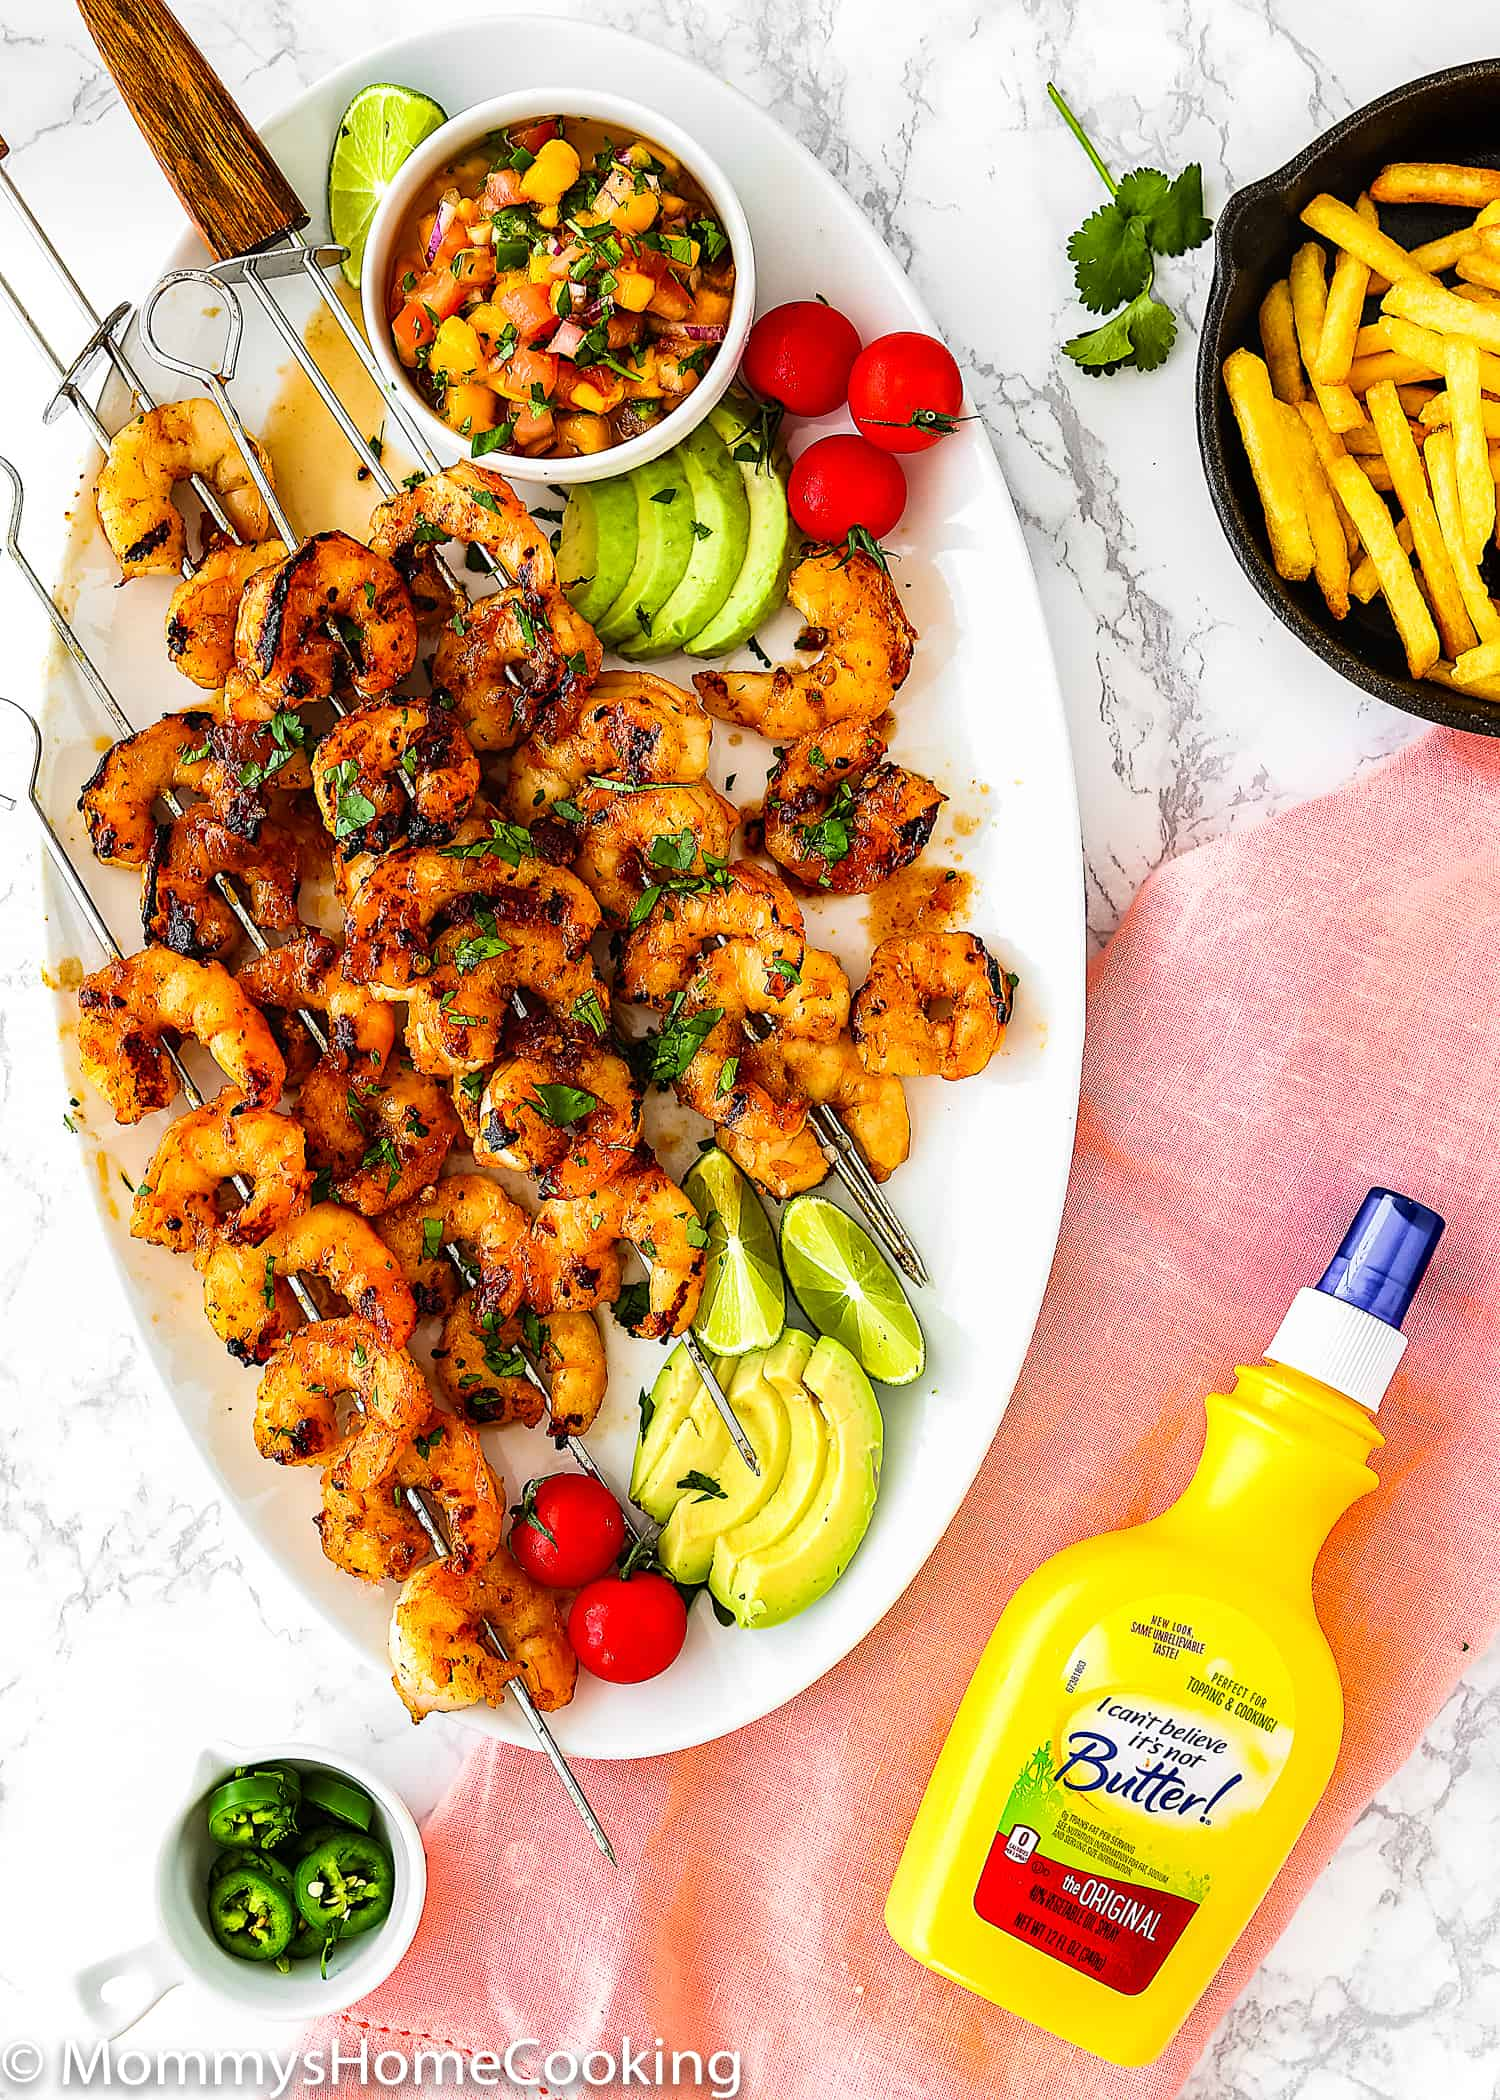 Honey Chipotle Grilled Shrimp in a white oval plate served with sliced avocado, cherry tomatoes, mango salsa and bottle of I Can't Believe It's Not Butter! Original Spray